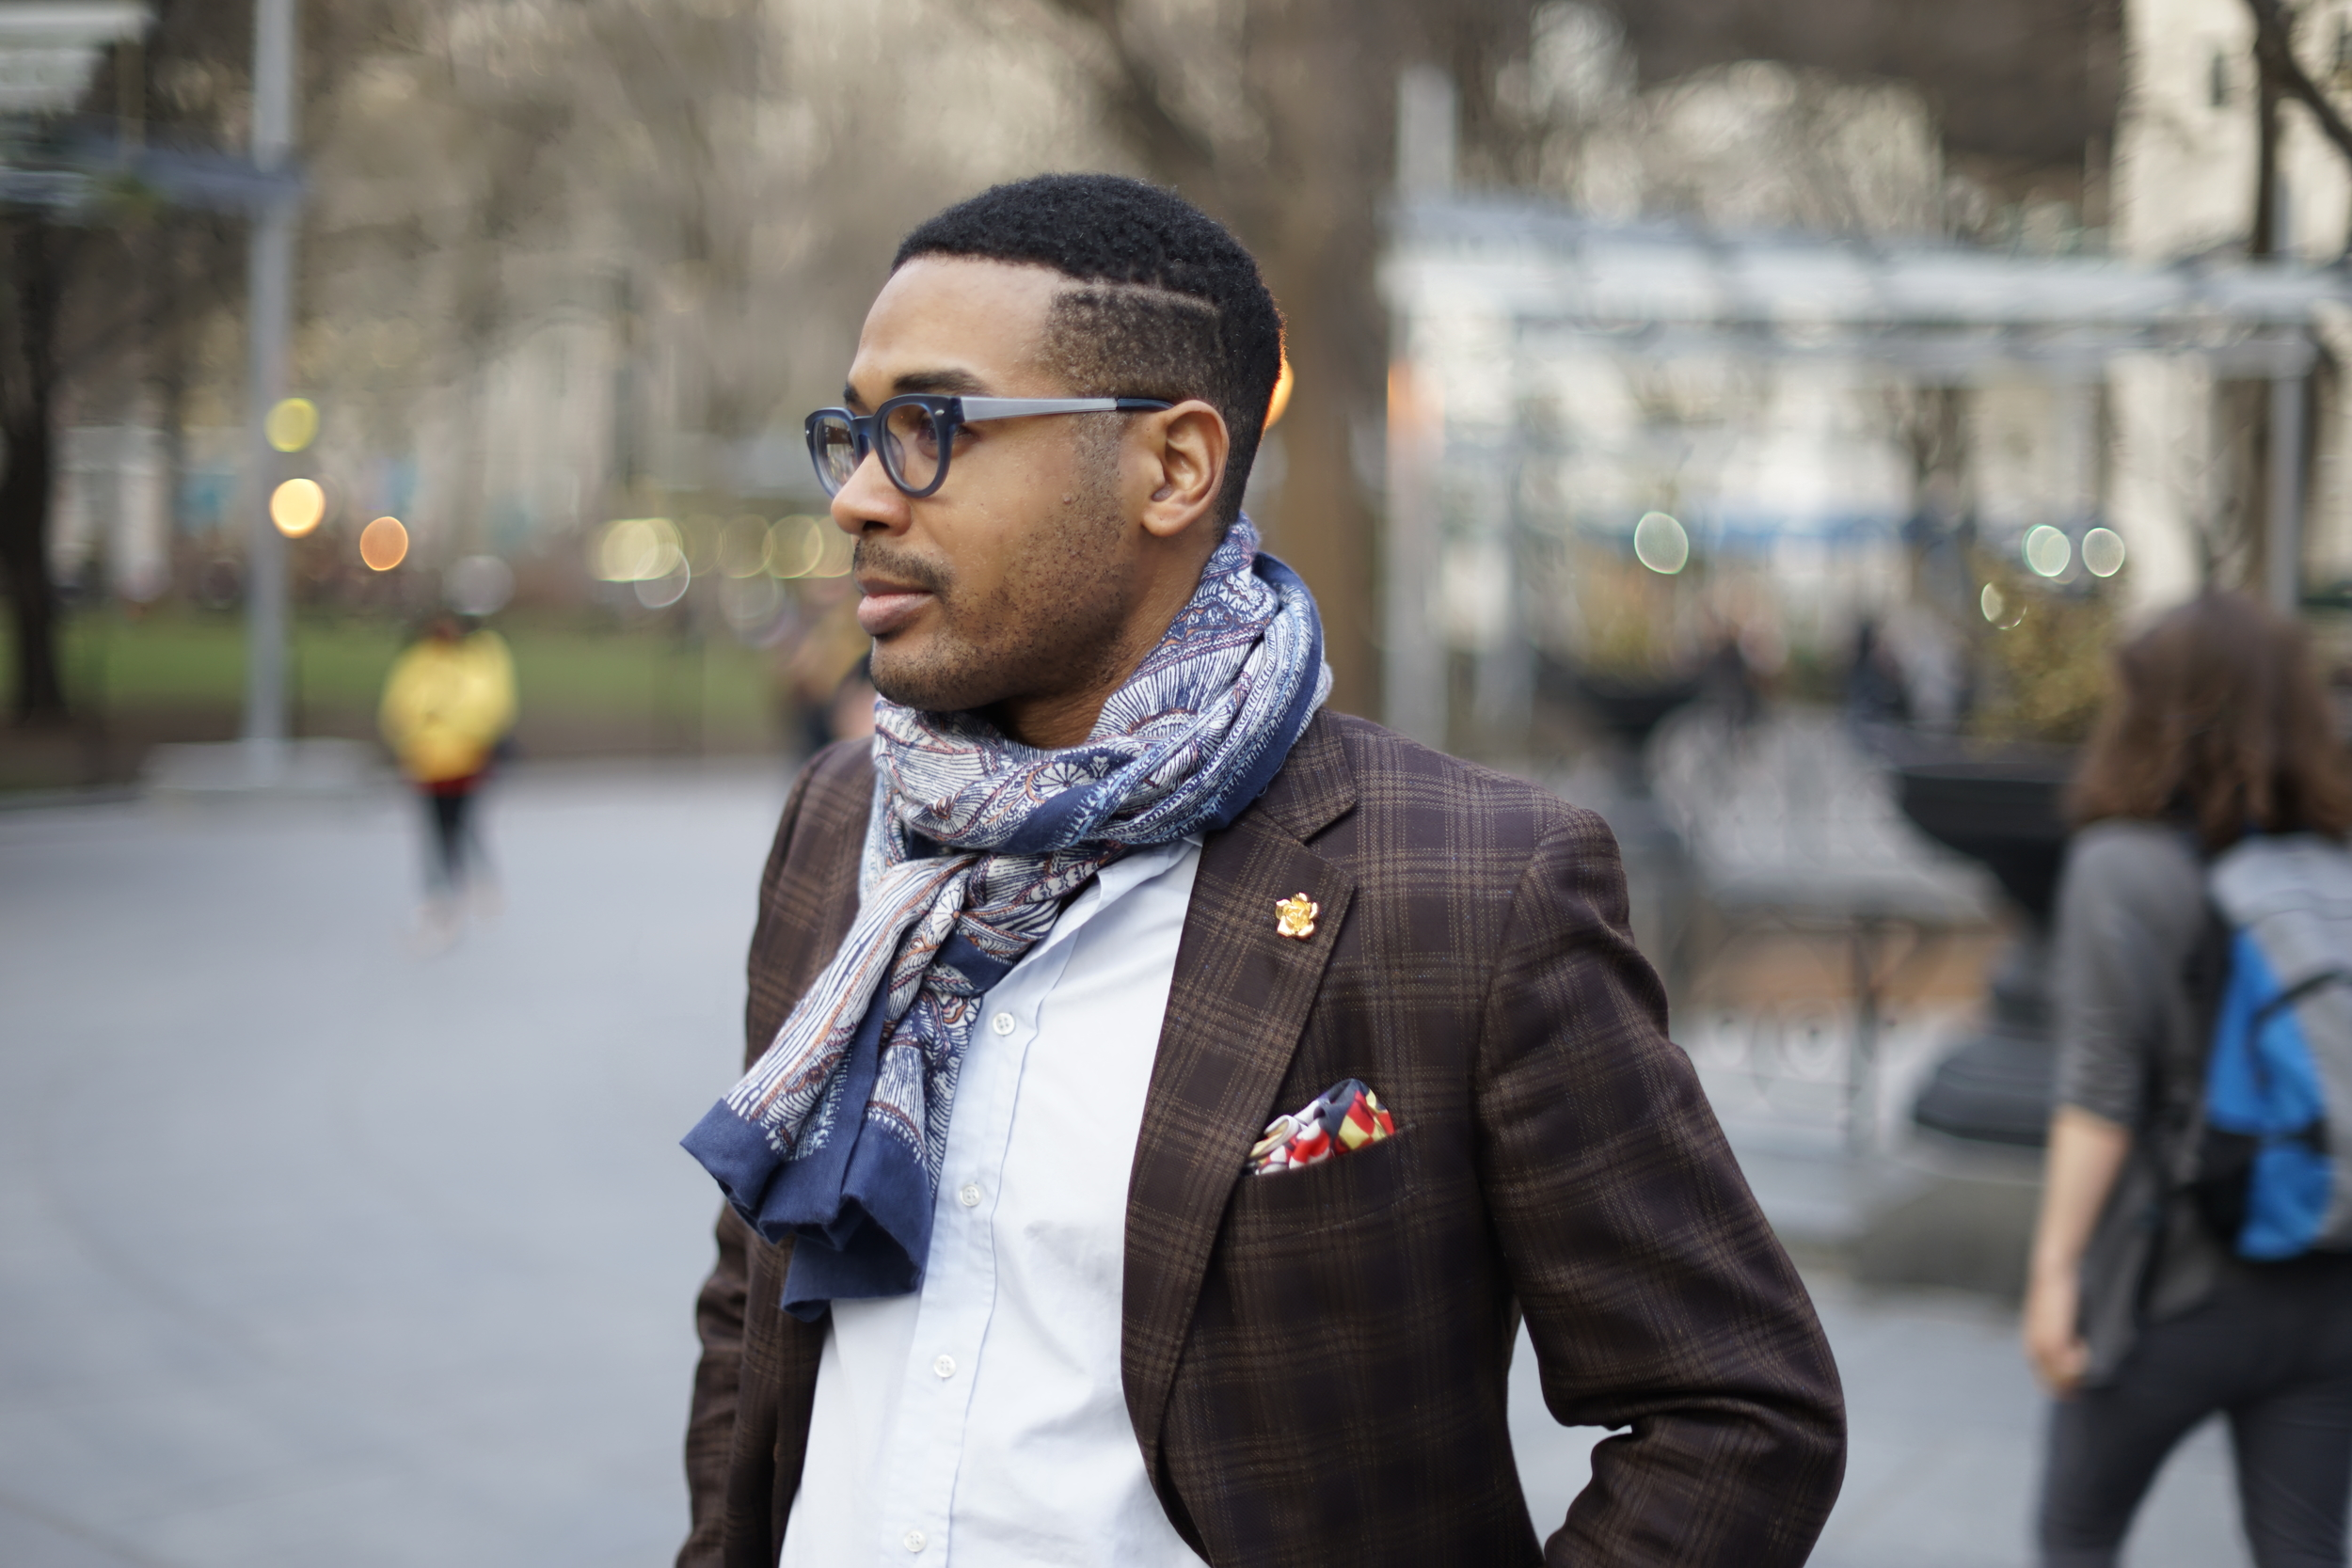 Silk/wool scarf from J.Crew, Jacket and shirt from Barney's NY, pocket square from Kent Wang, frames from SEE Eyewear, lapel pin from by Elias